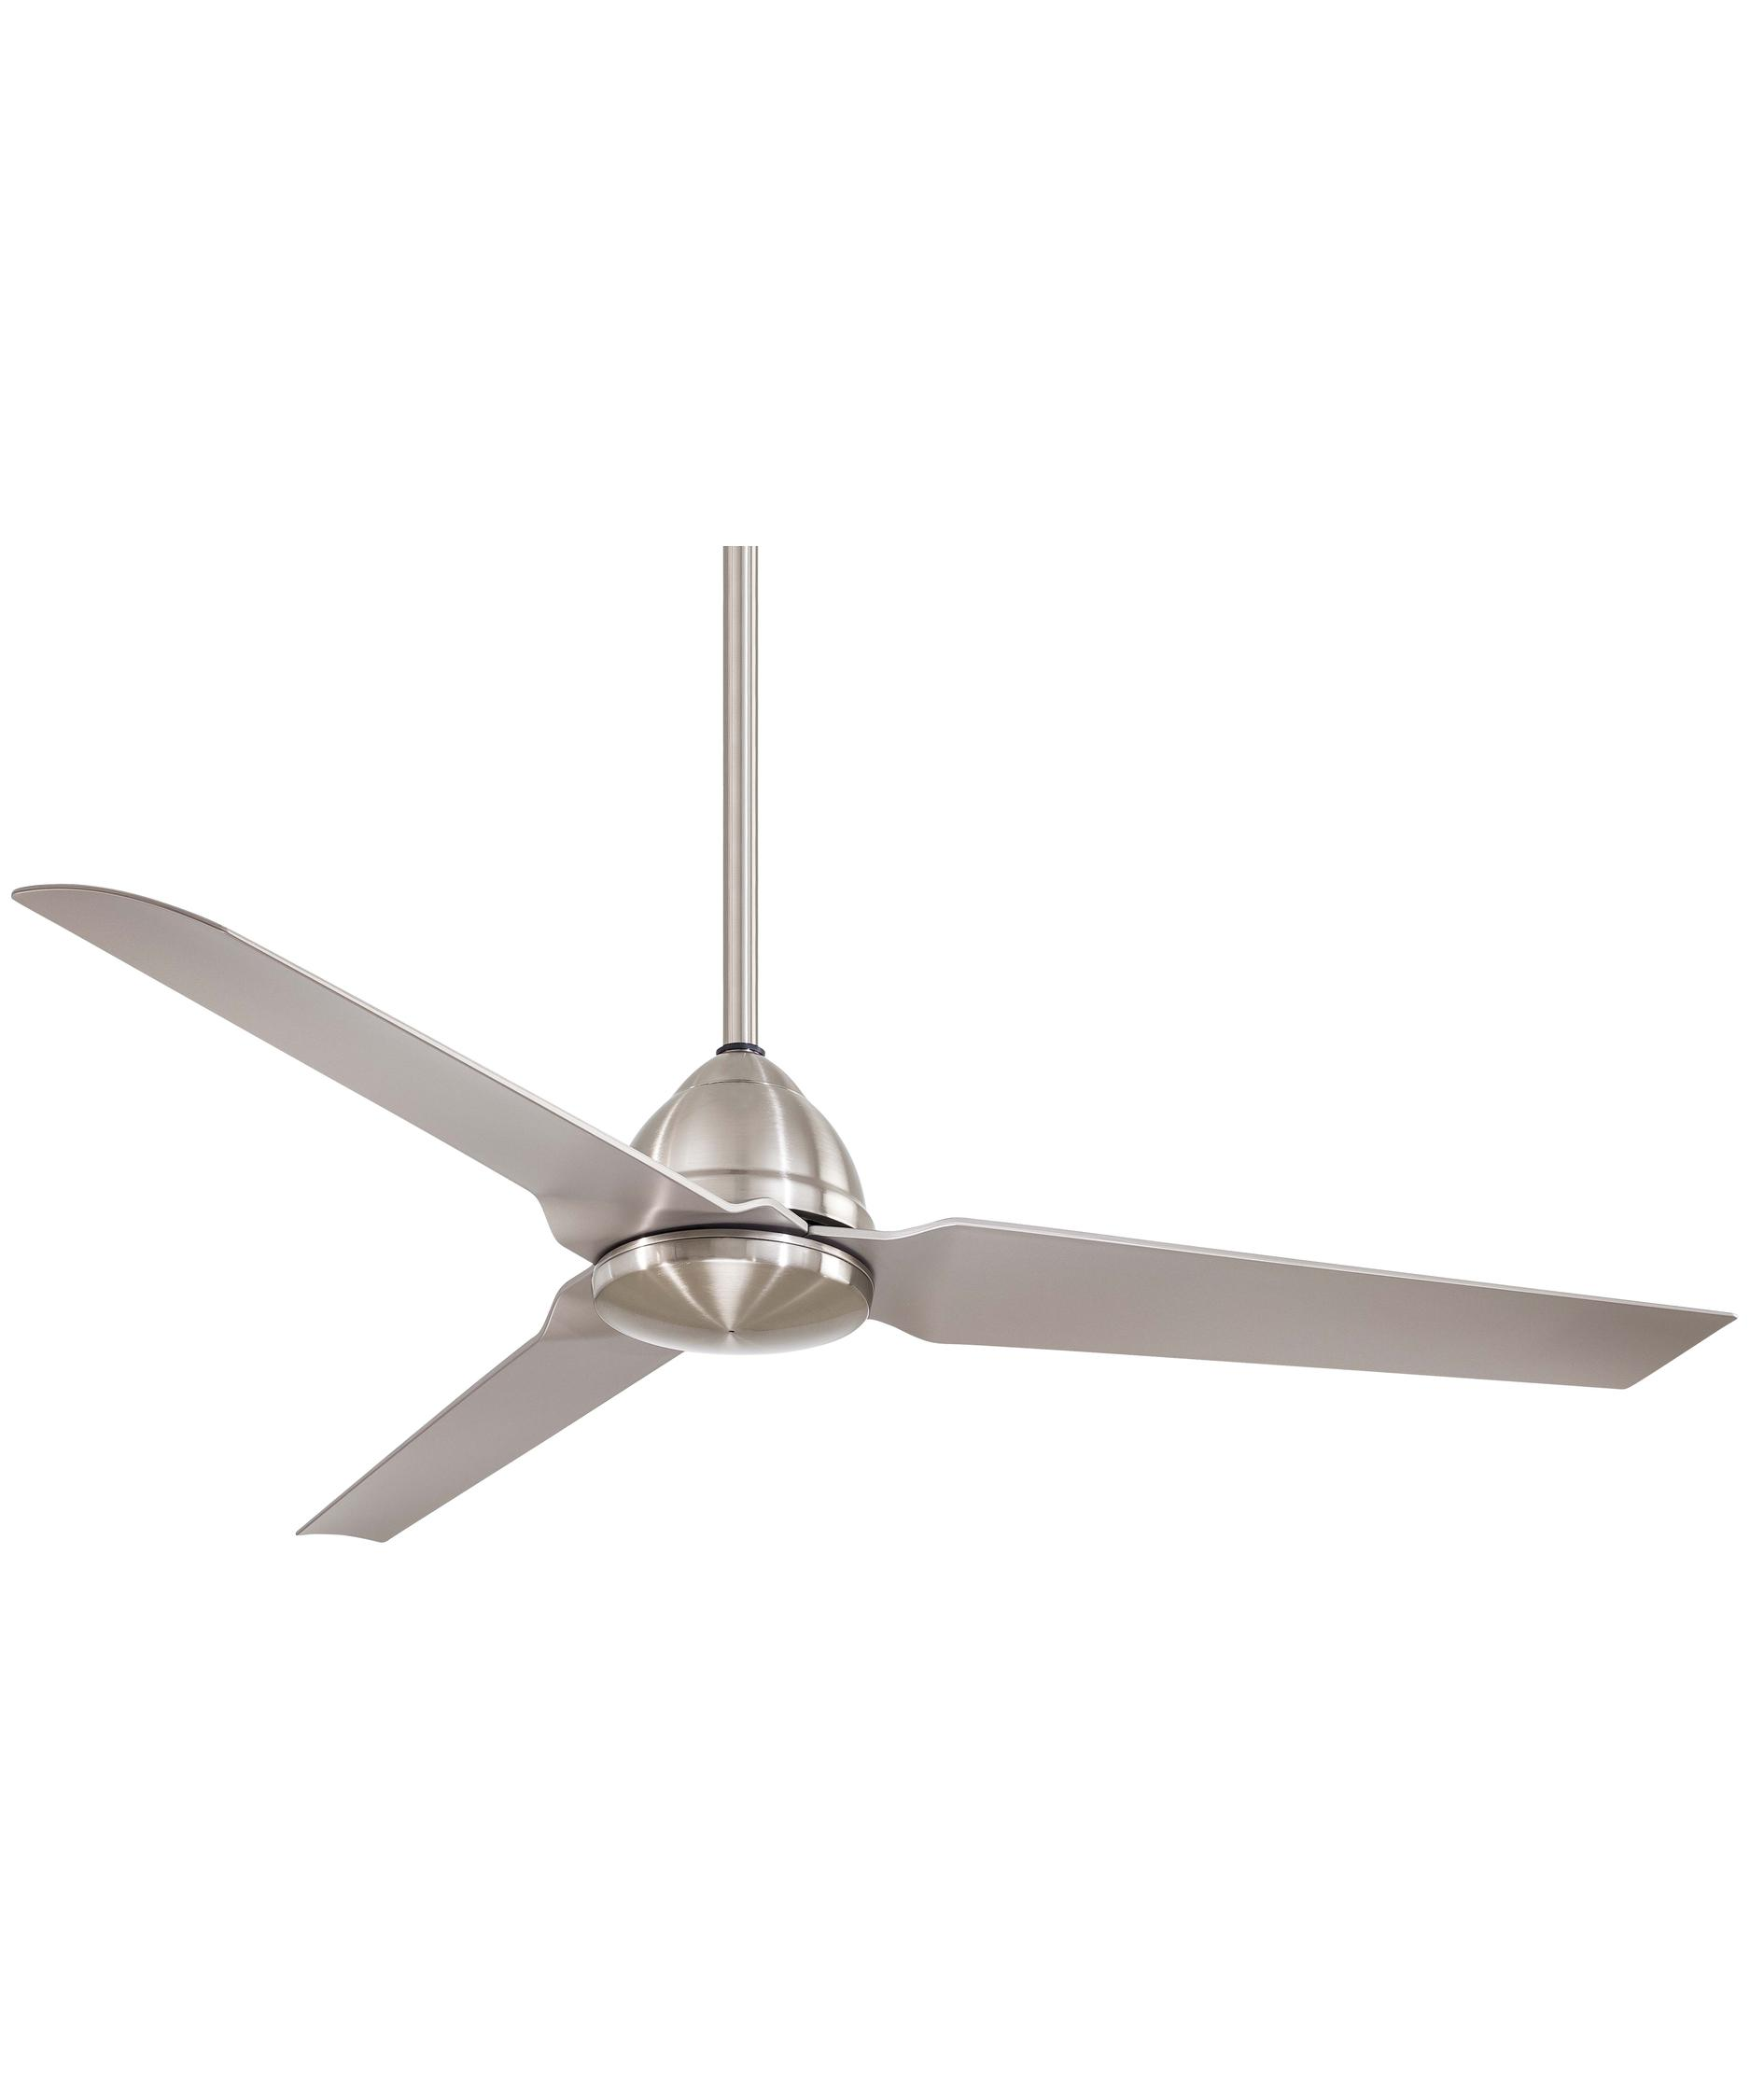 minka aire f java  inch  blade ceiling fan  capitol  - shown in brushed nickel finish